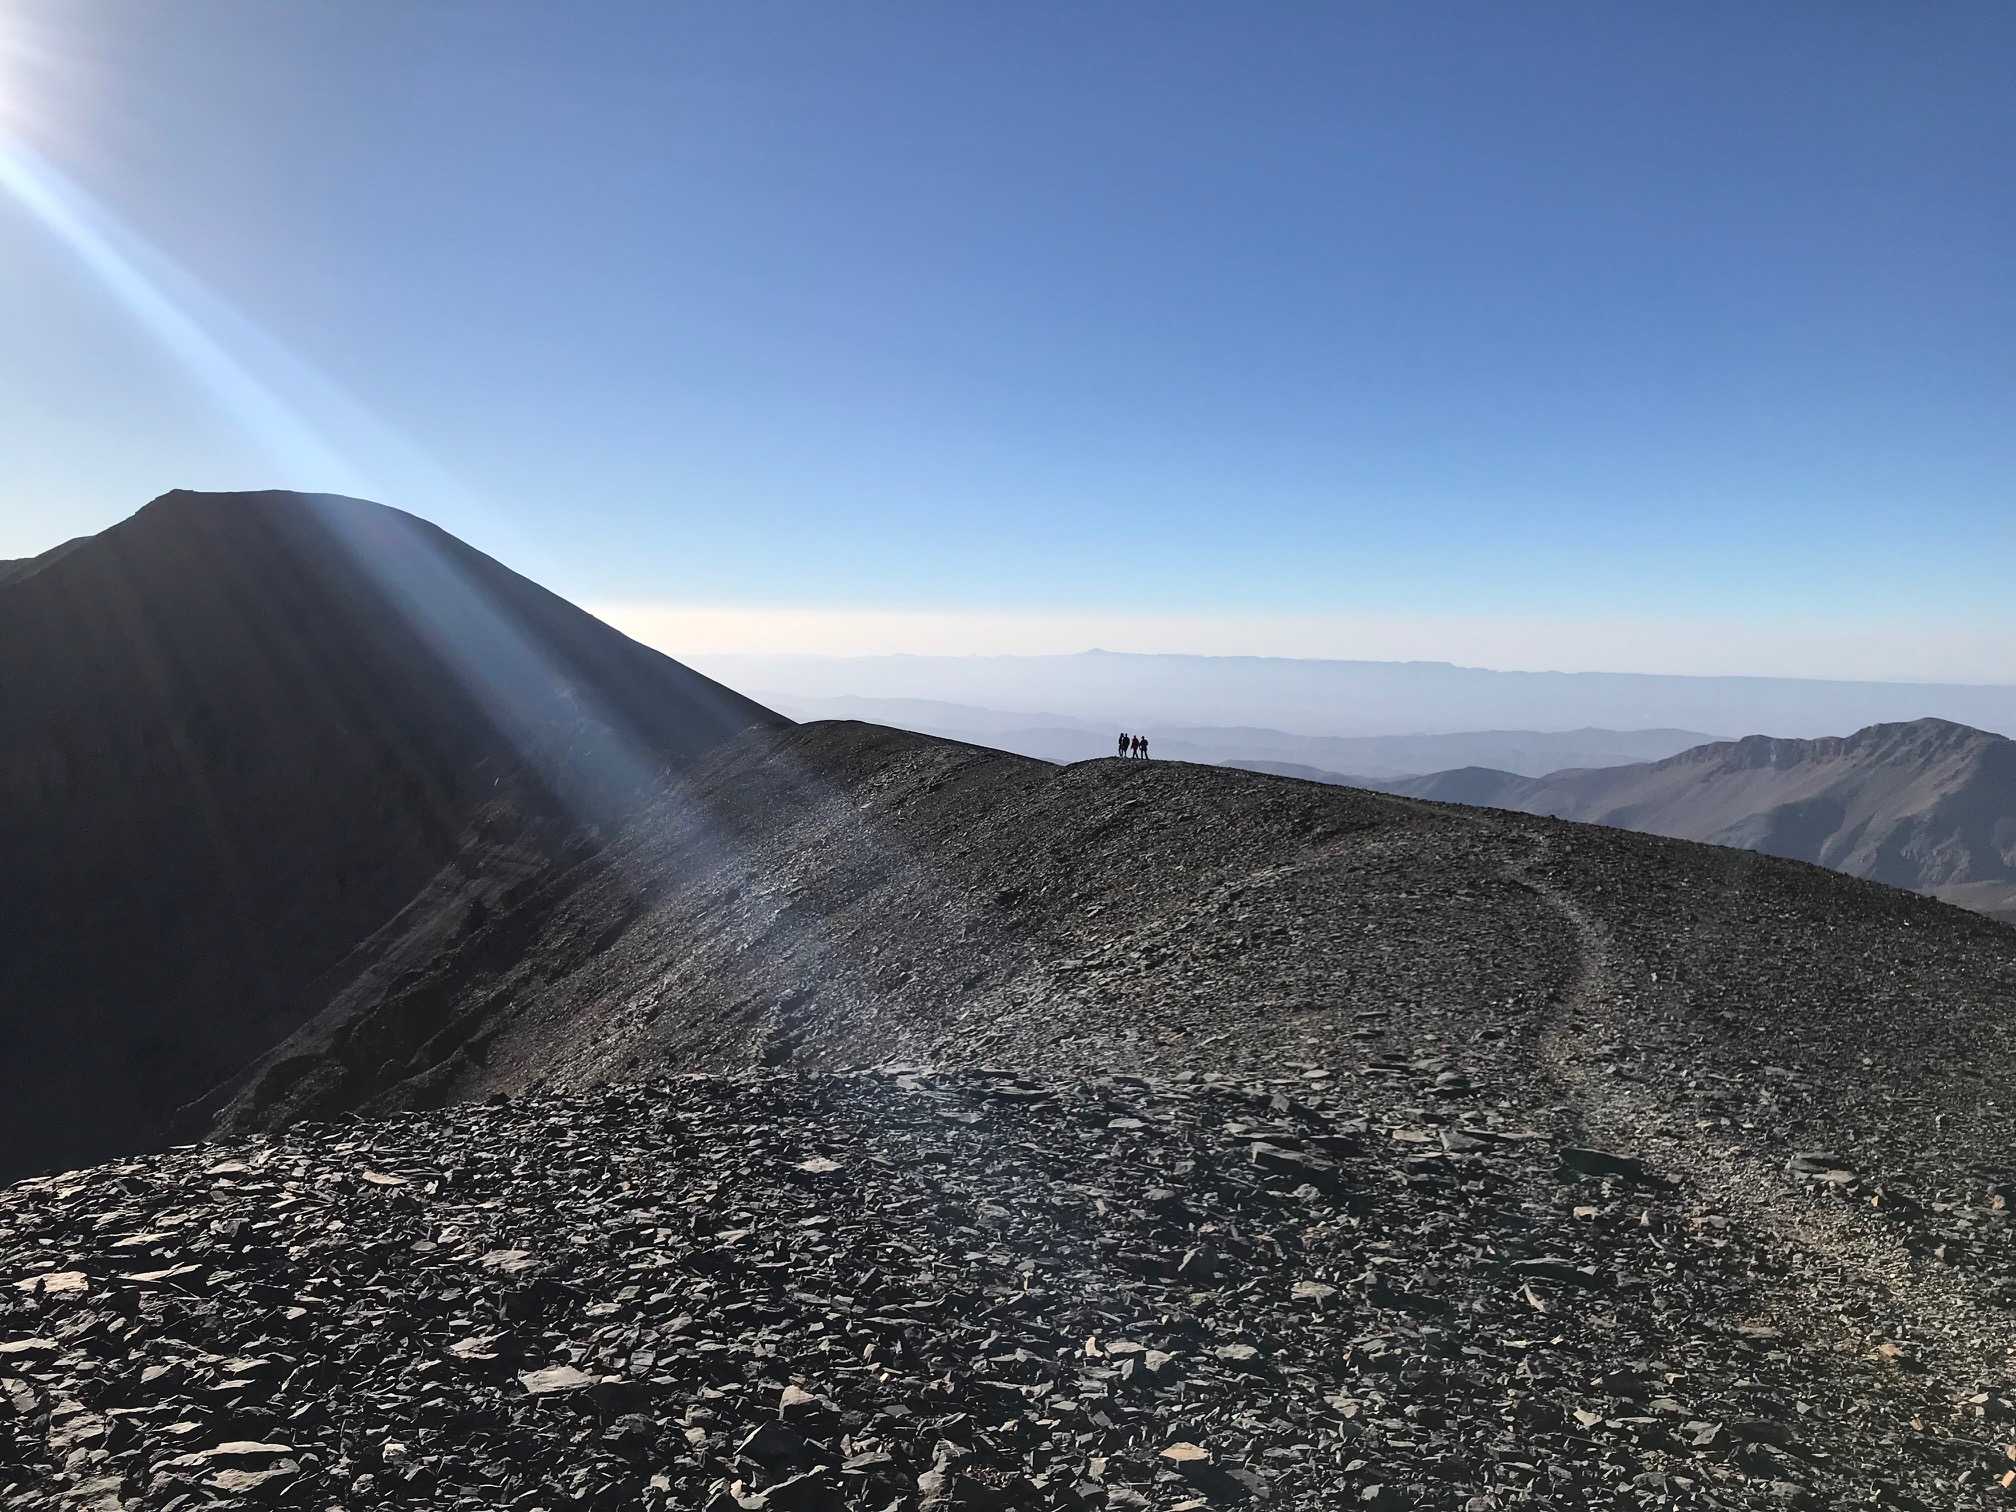 Hiking the Mgoun Summit, Morocco's Third Highest Peak